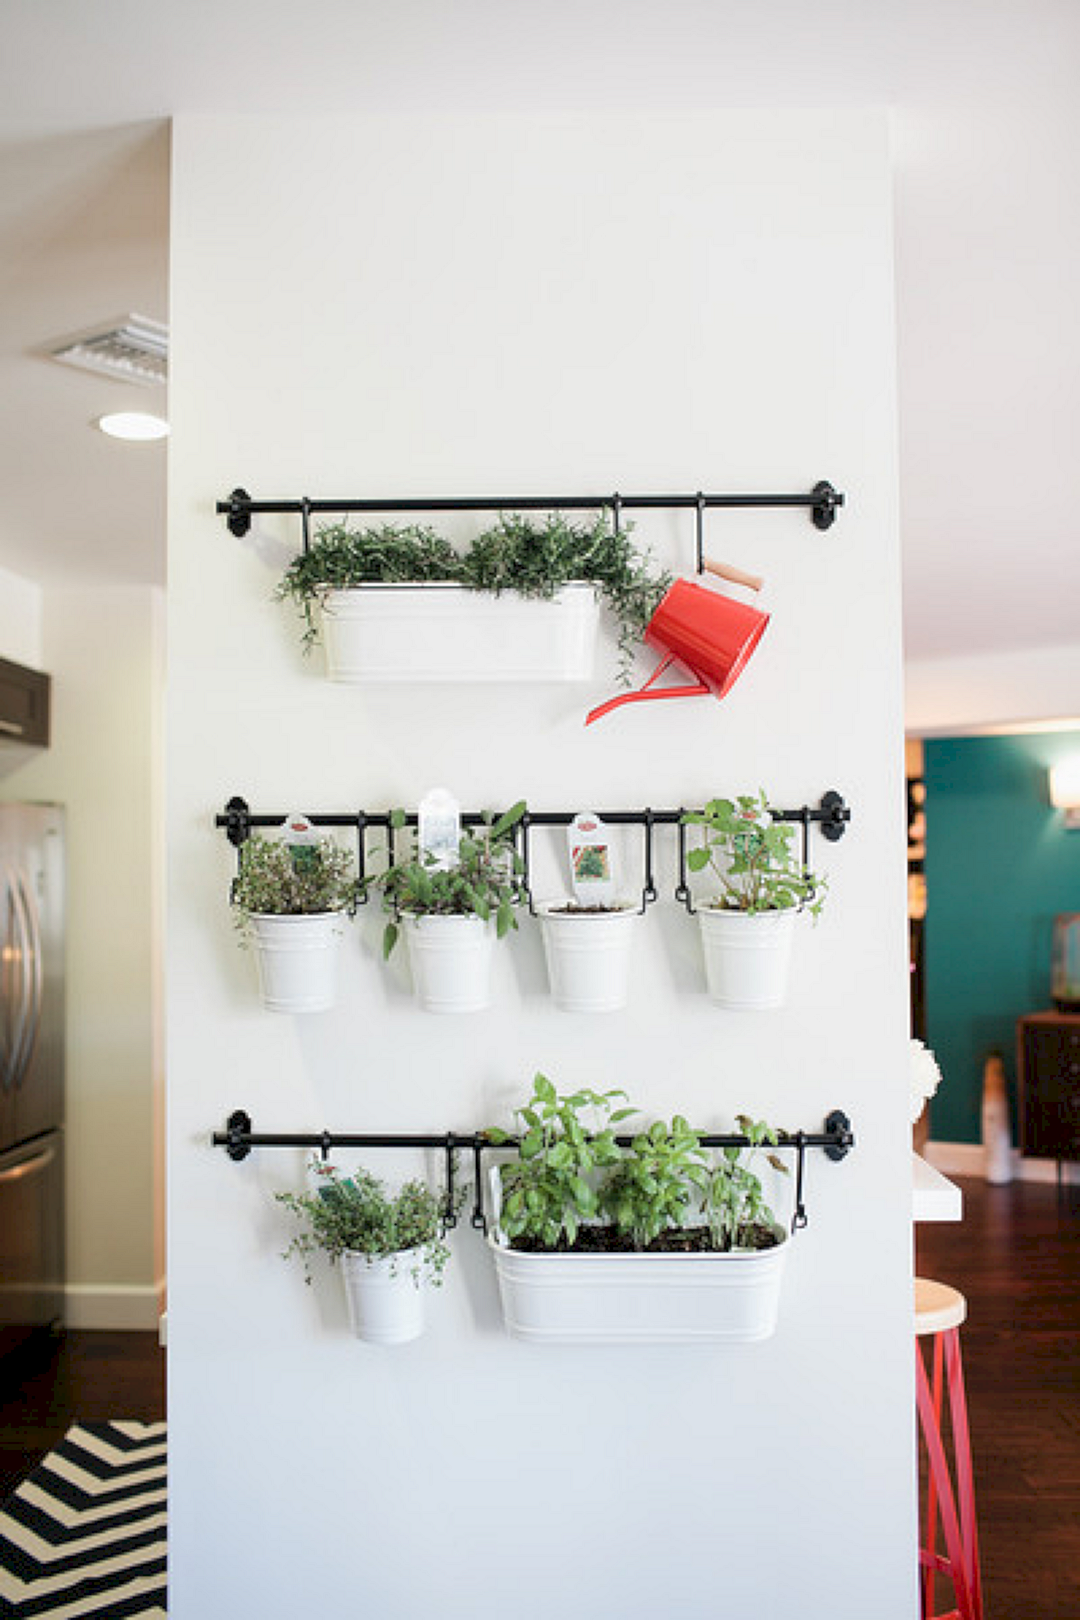 15 Best Indoor Herb Garden Ideas for Your Small Home and Apartment ...